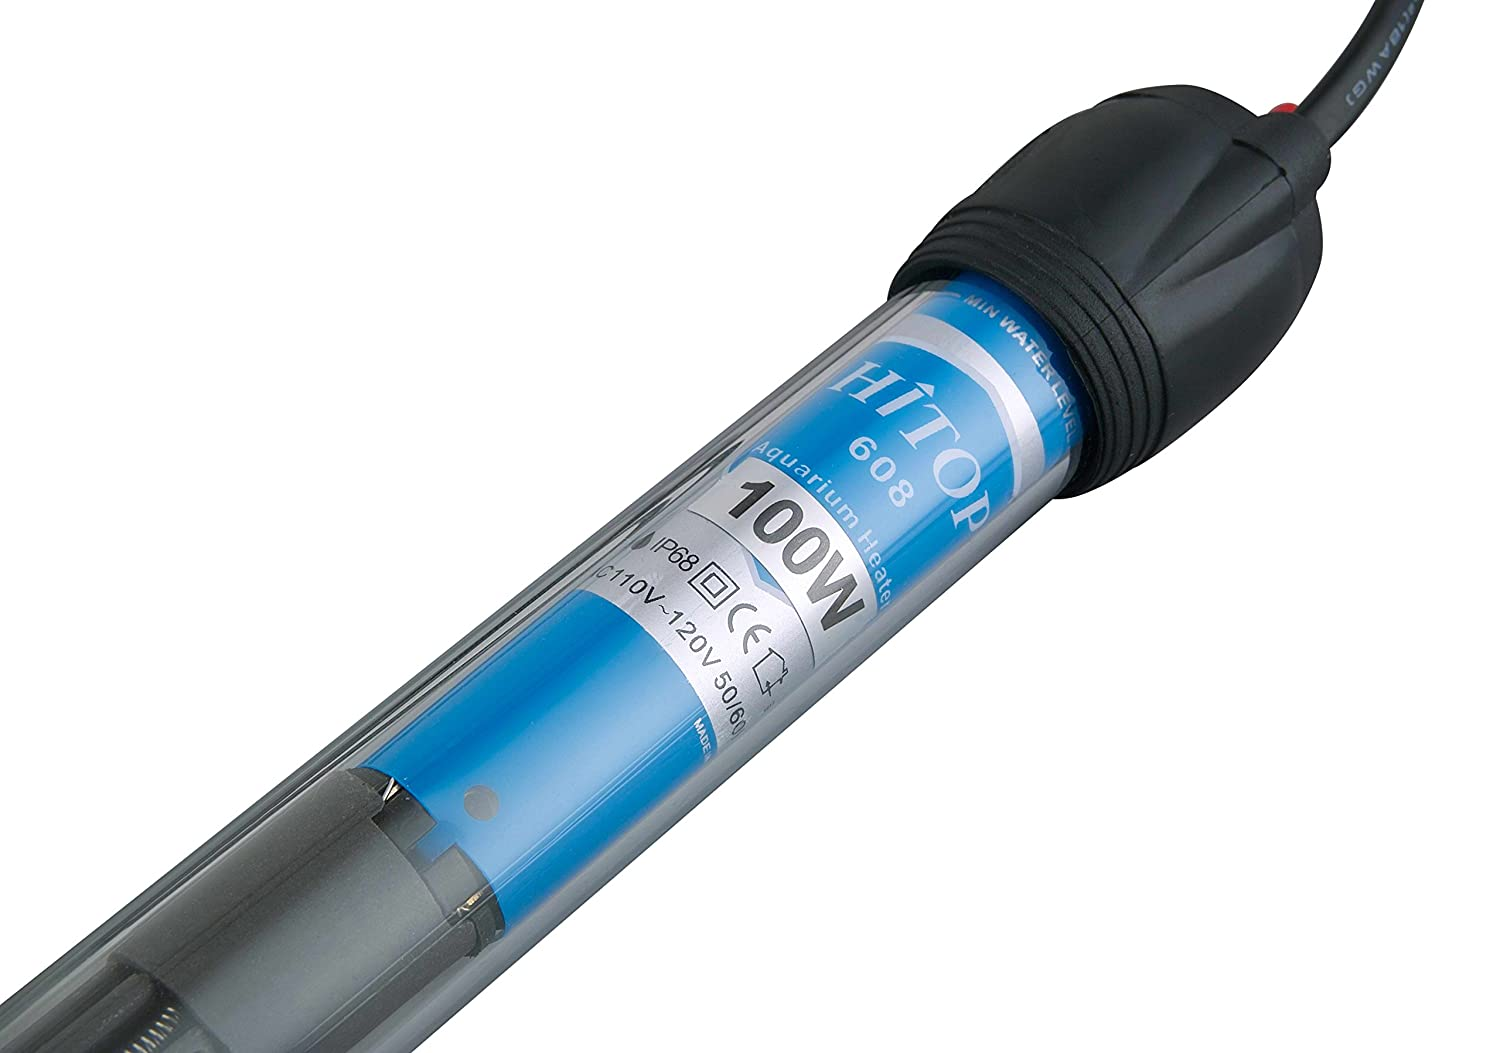 HITOP HP-608 Submersible Aquarium Heater 50W 100W 300W with Thermometer and Extra Sucker Cup Haisen